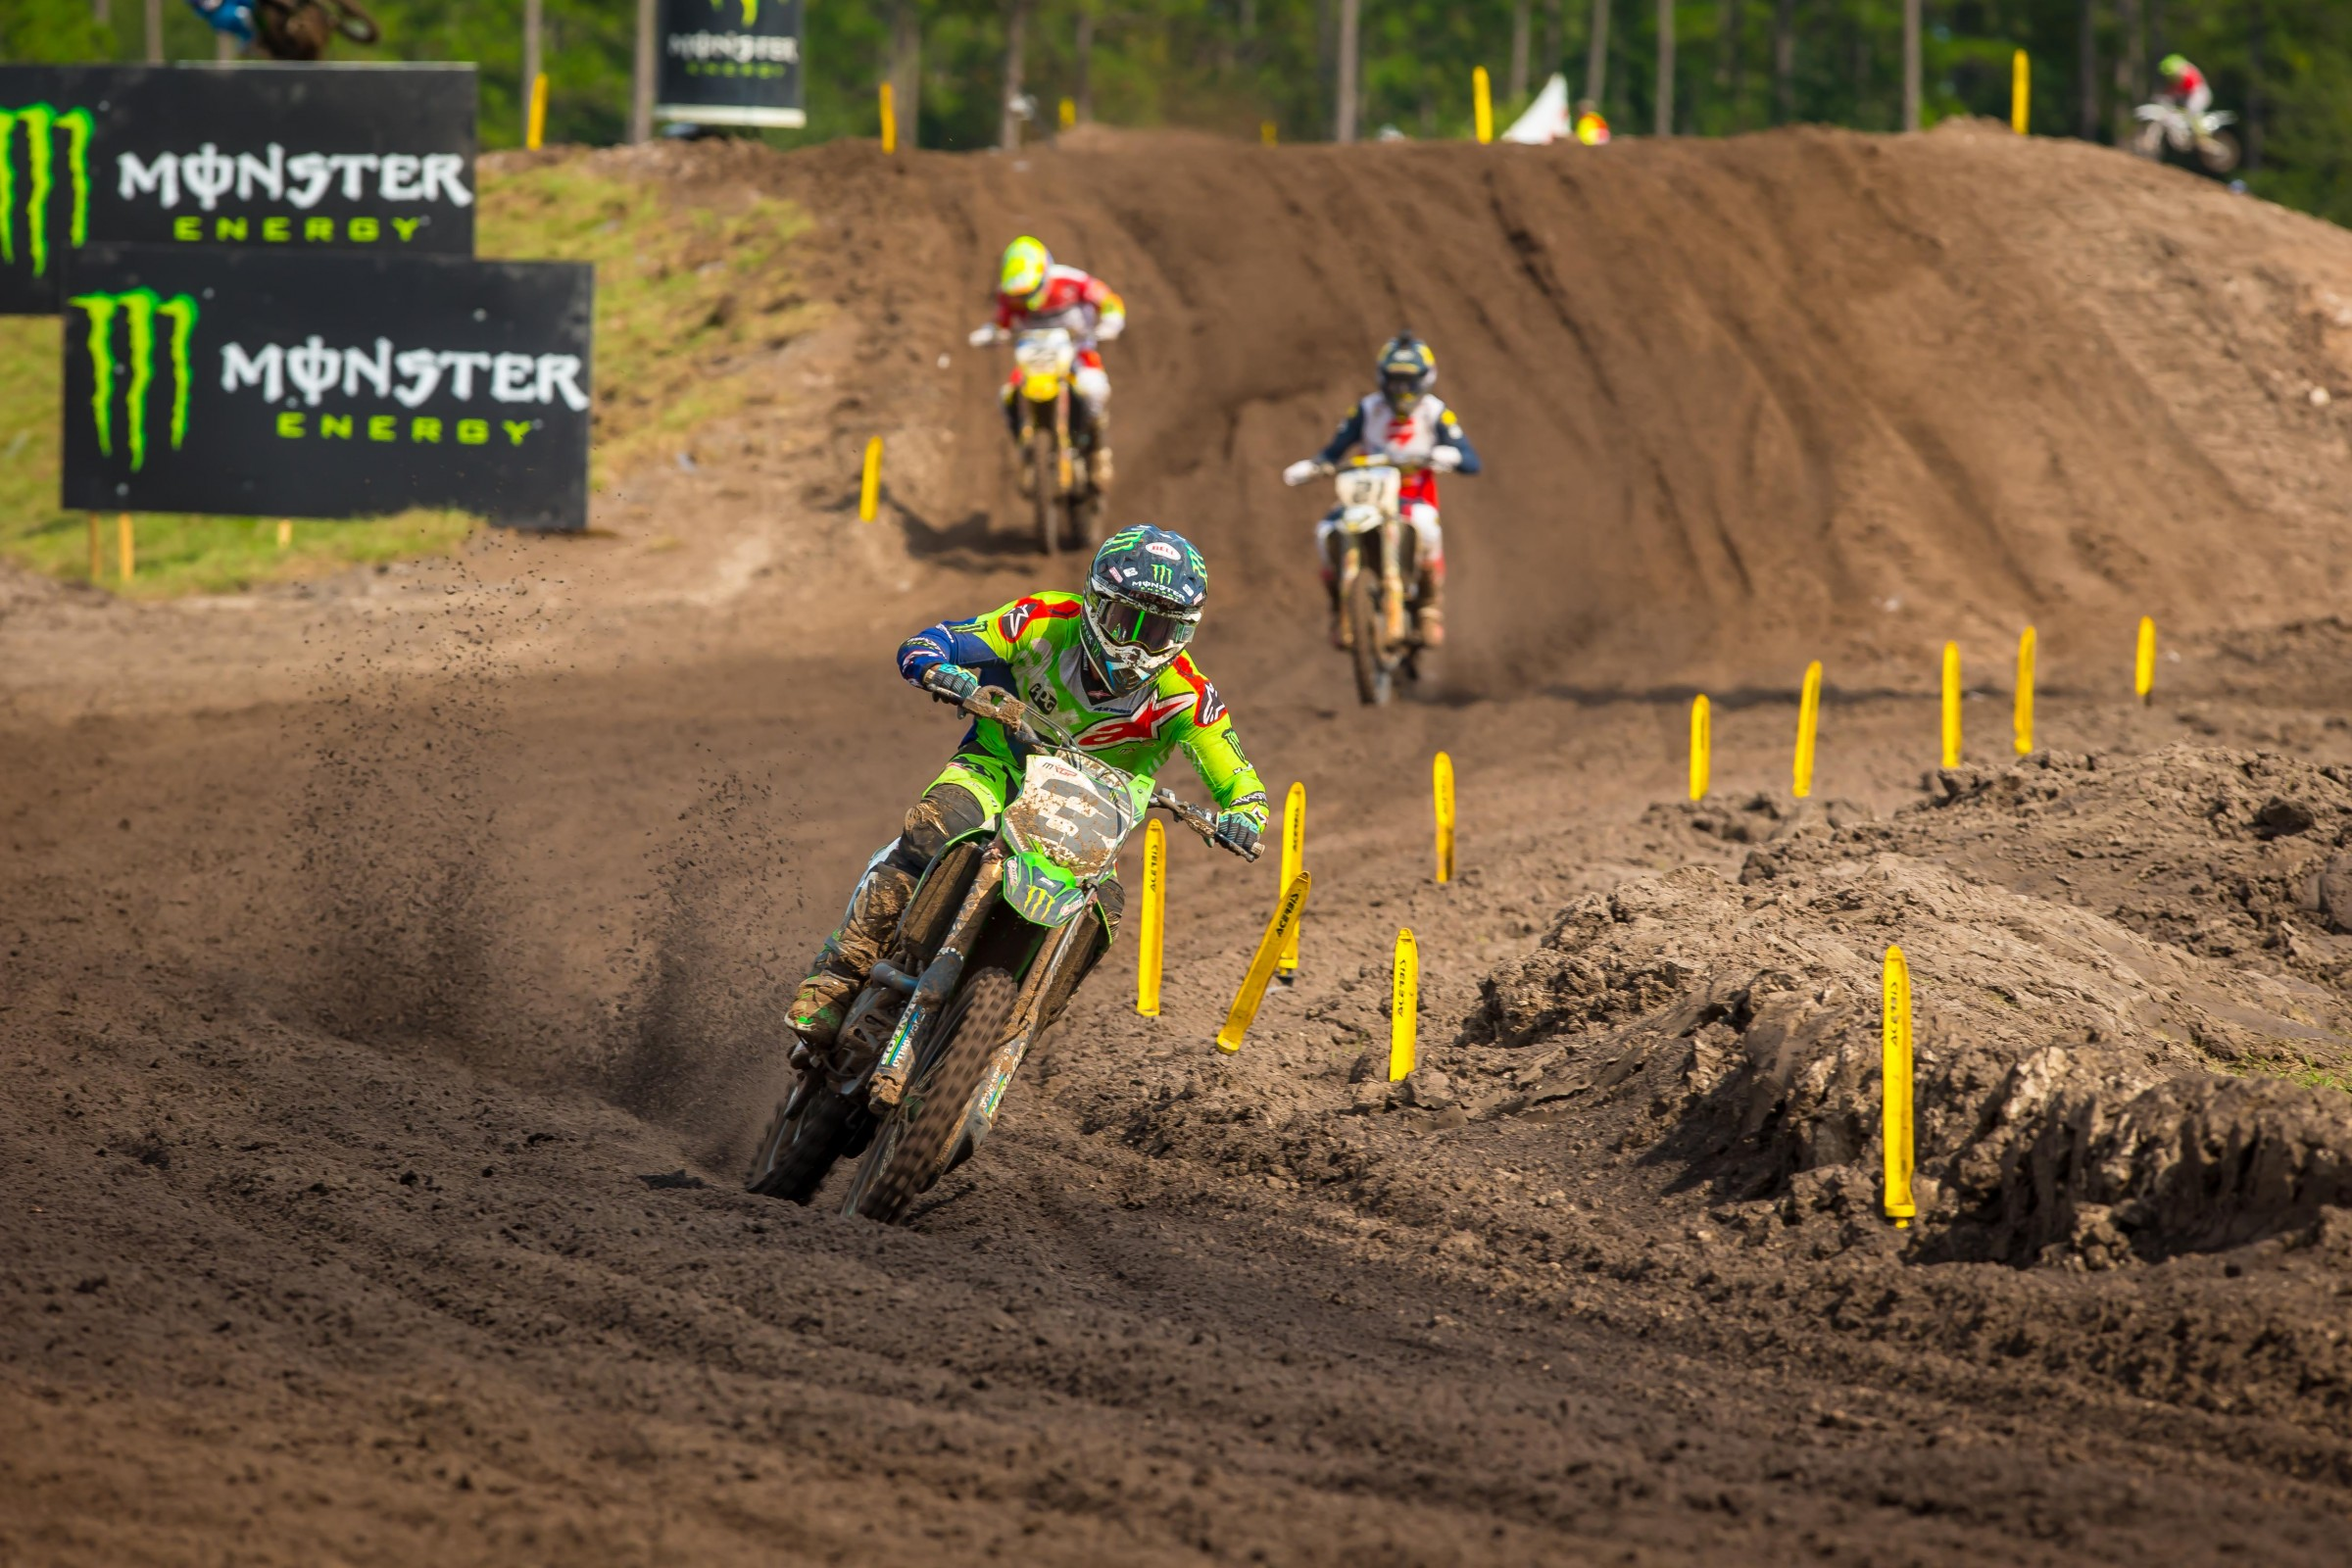 Eli Tomac ran away with the first moto win. He finished second overall on the day.